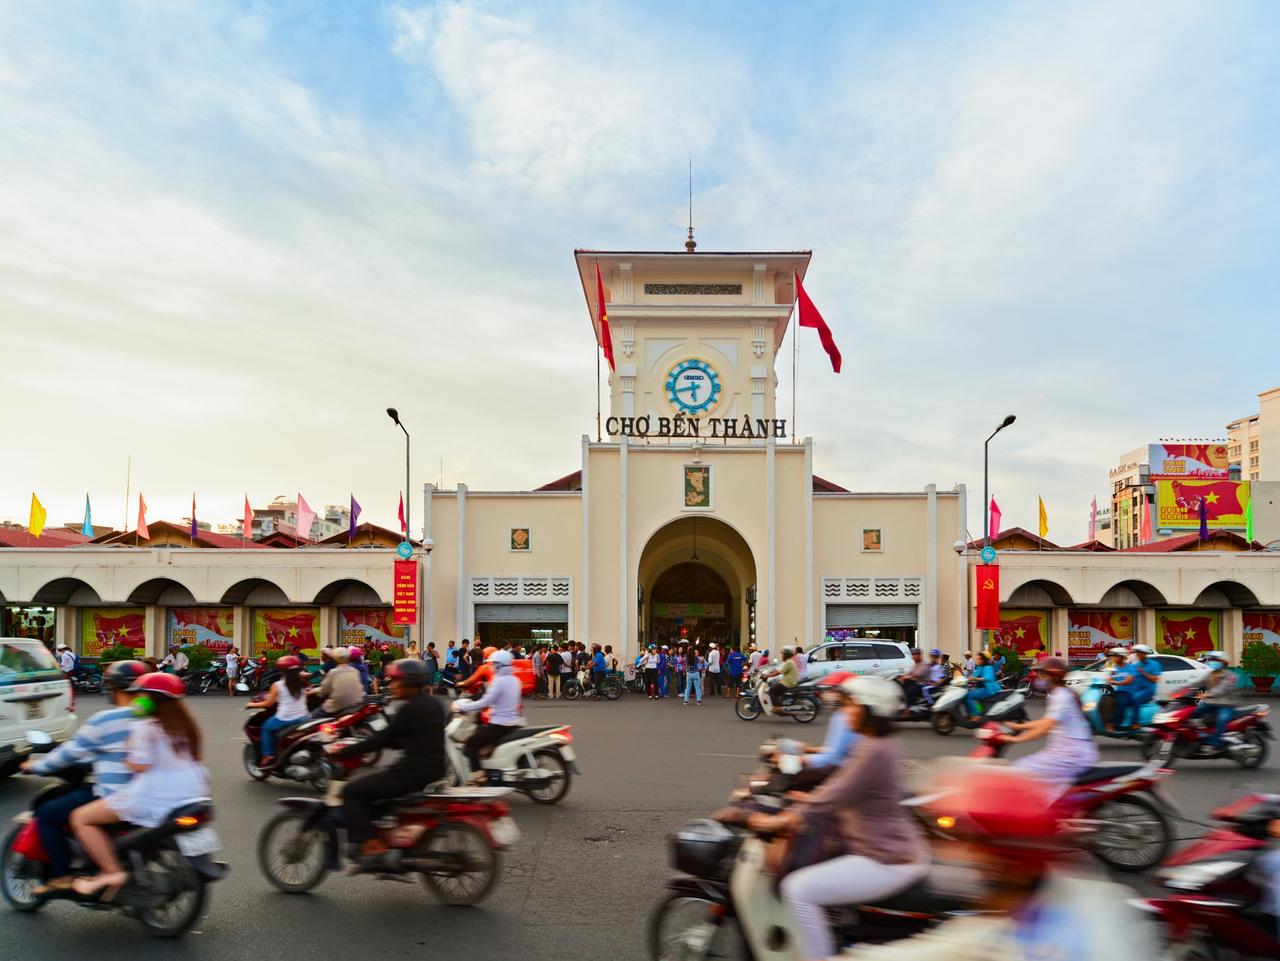 Traditional Ben Thanh market in Ho Chi Minh city, Vietnam